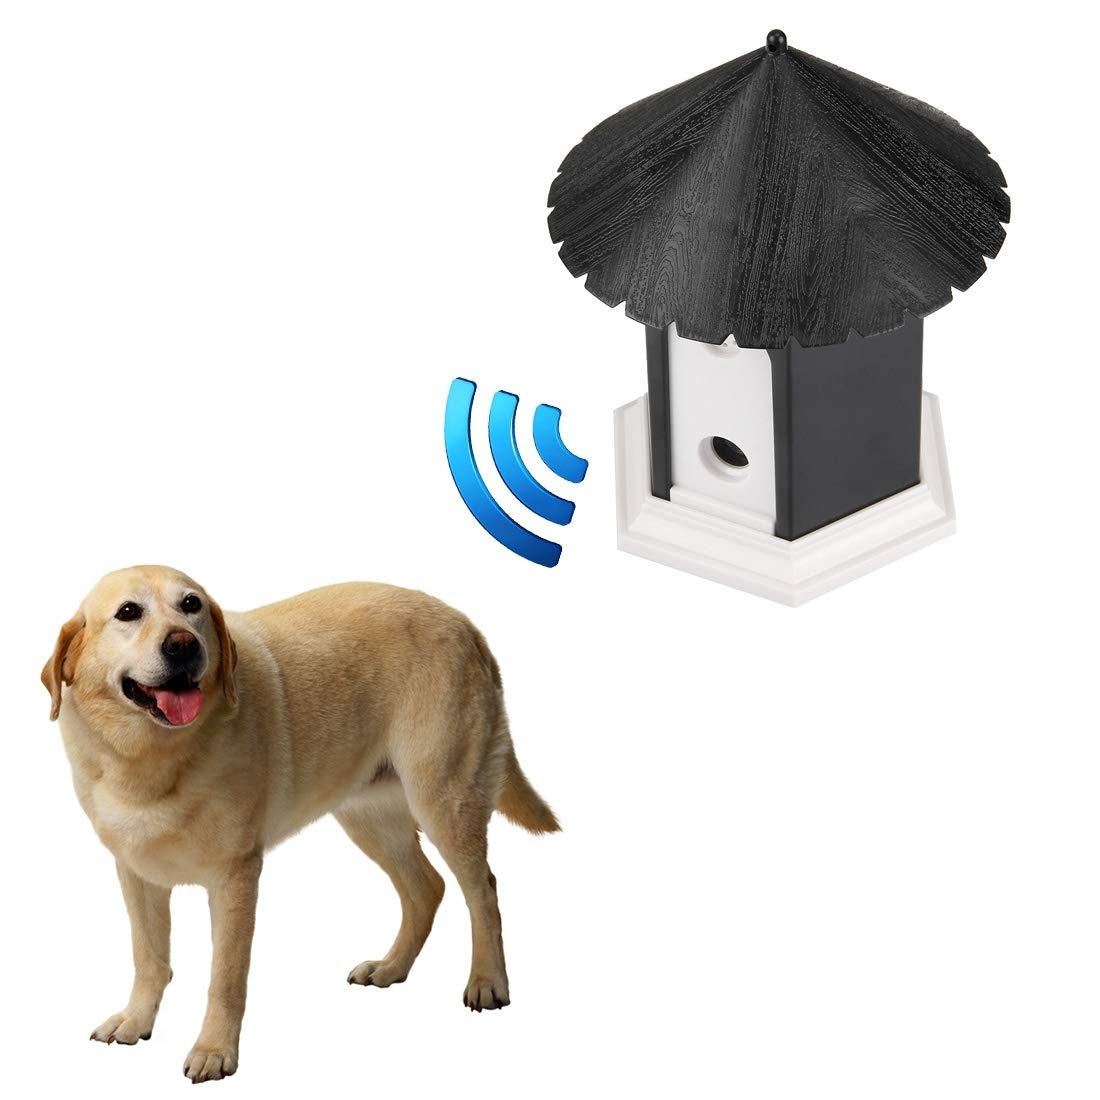 VAXT Lead Removed Pet Dog Outdoor Bark Control Training House by VAXT (Image #9)